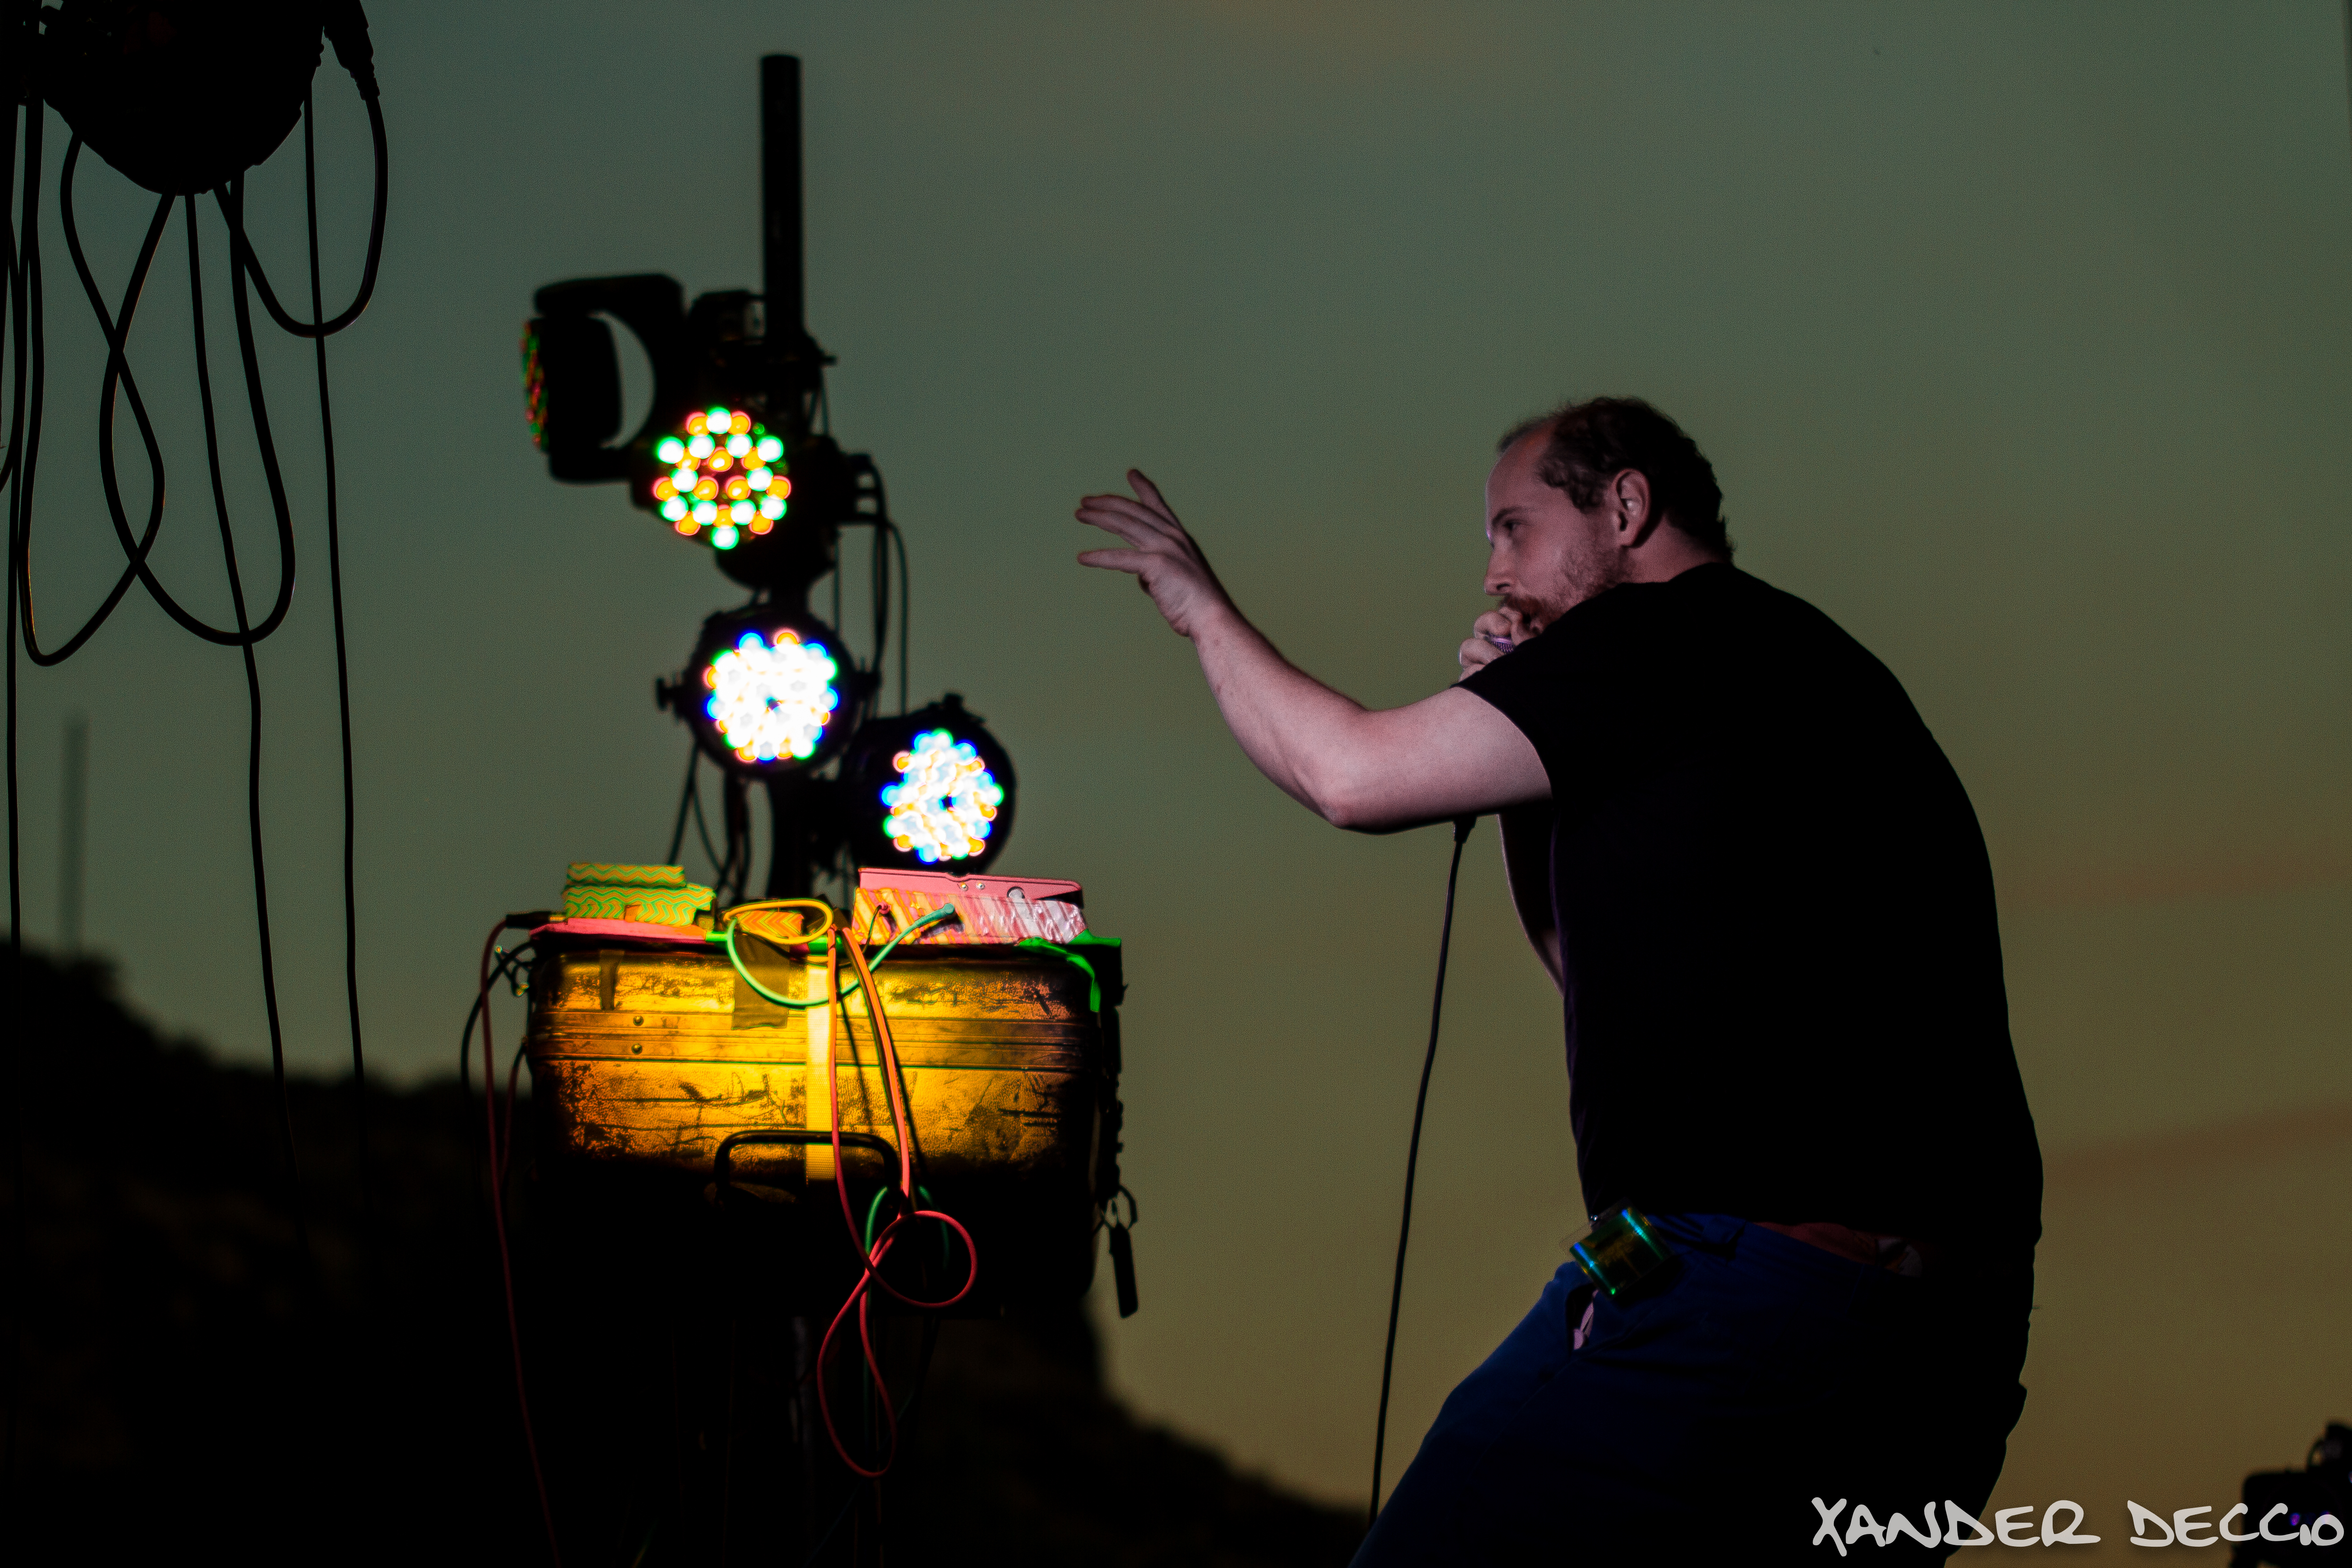 Dan Deacon Live at The Gorge (Photo by Xander Deccio)